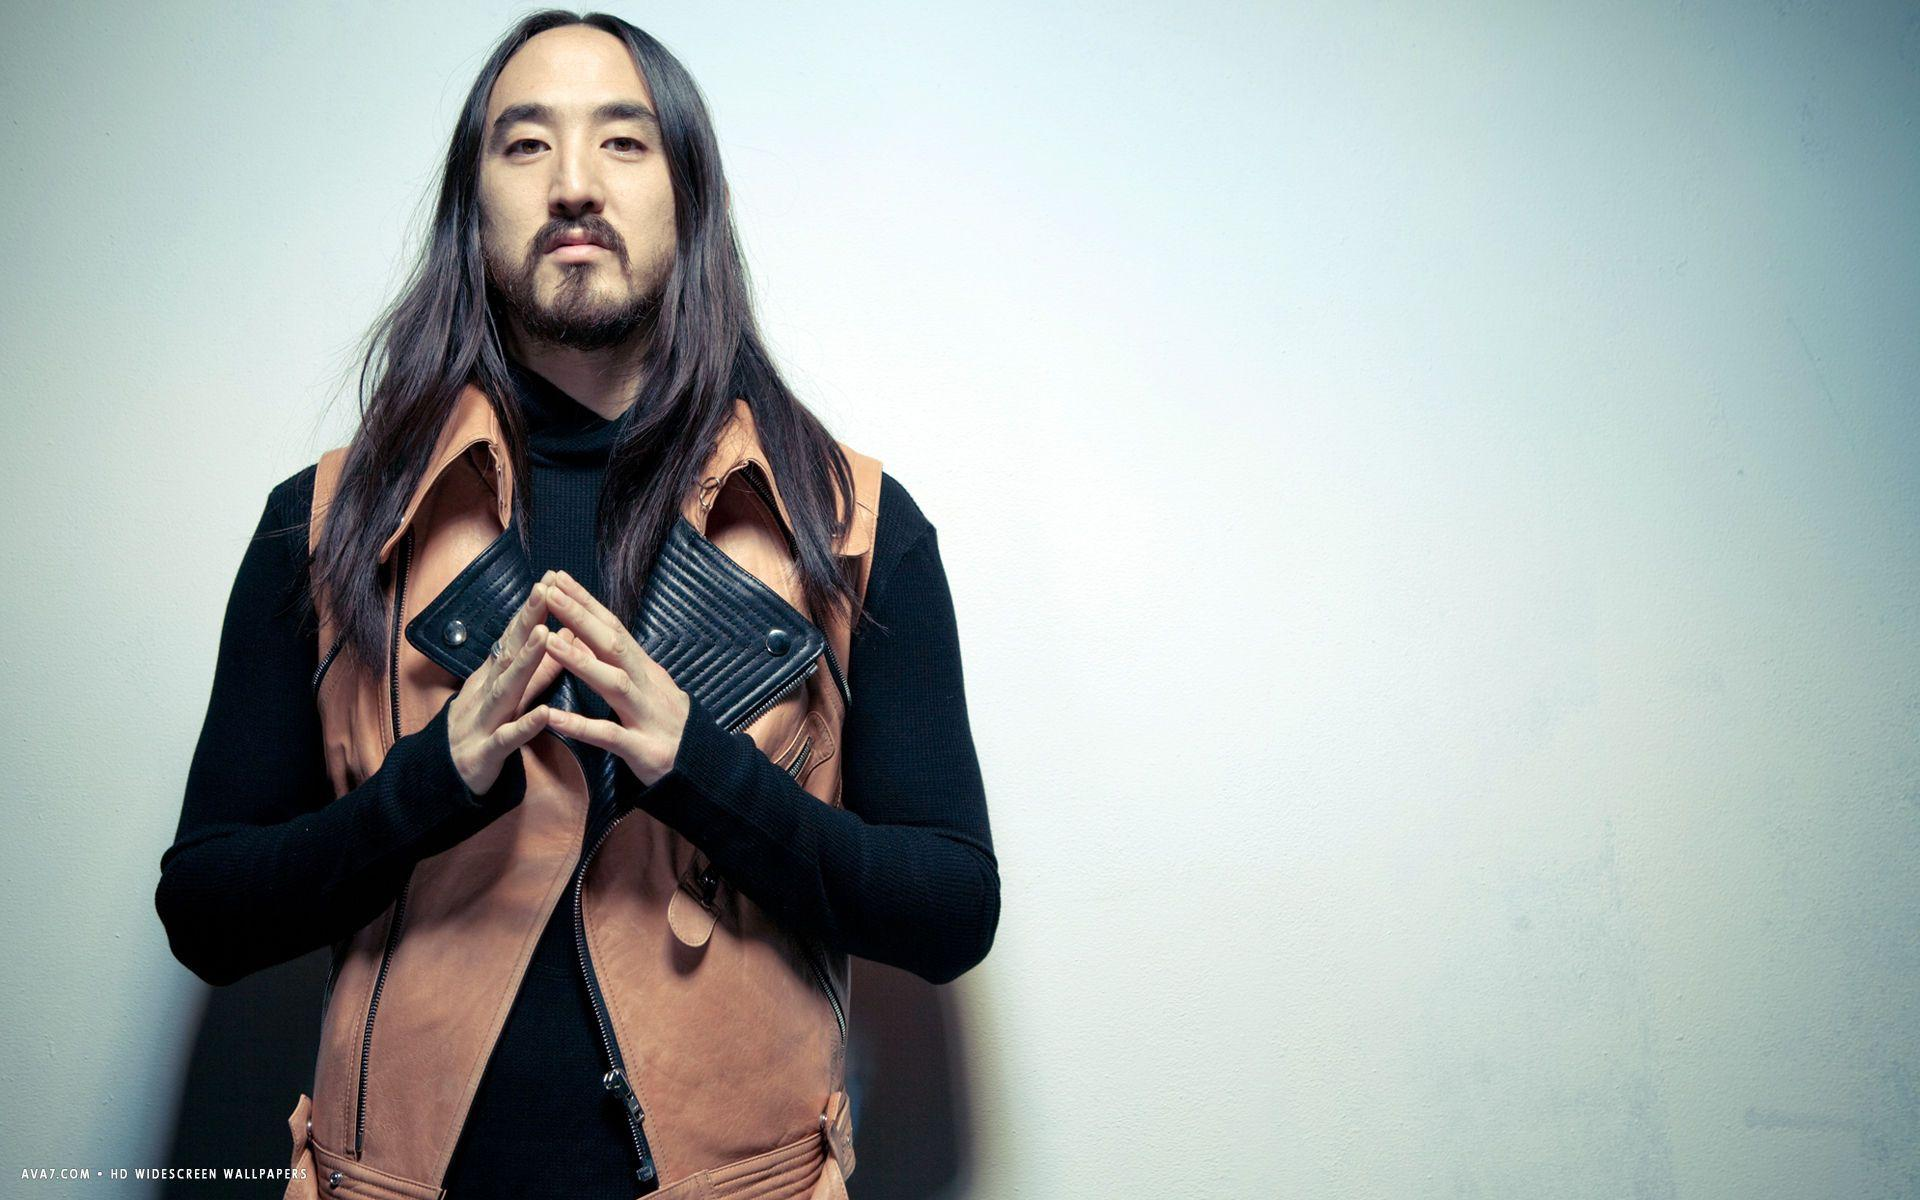 steve aoki hd widescreen wallpapers / page 1 / dj backgrounds